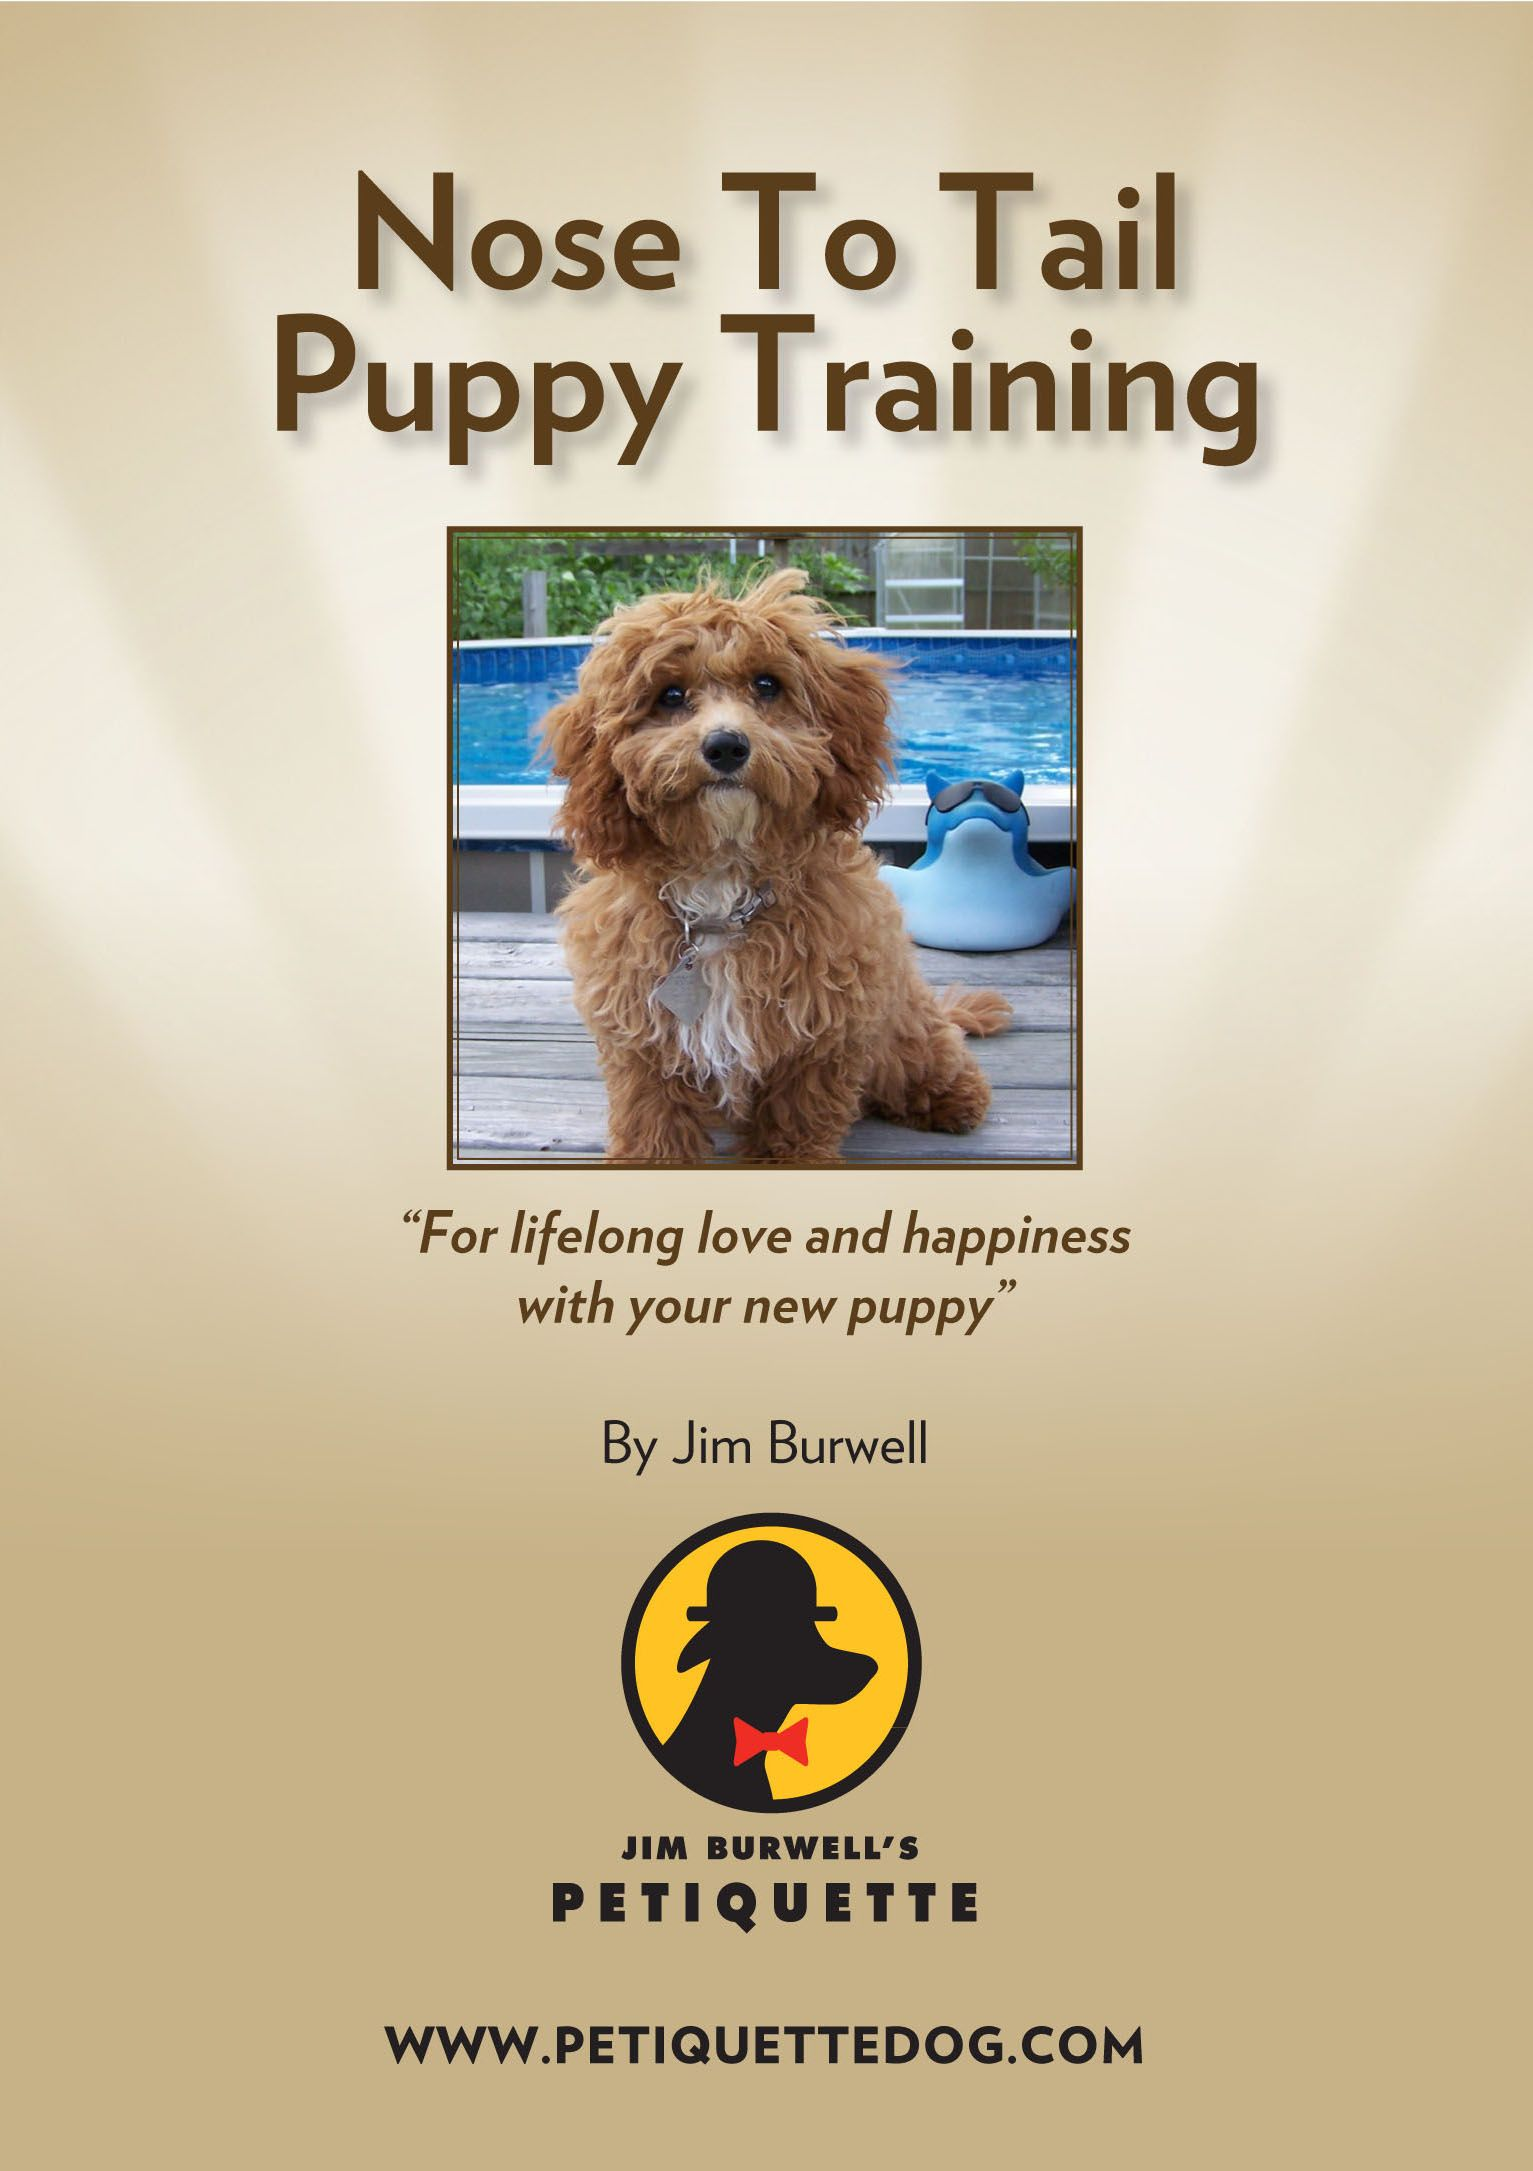 Nose To Tail Puppy Training Dvd Dvd On Puppy Training Nose To